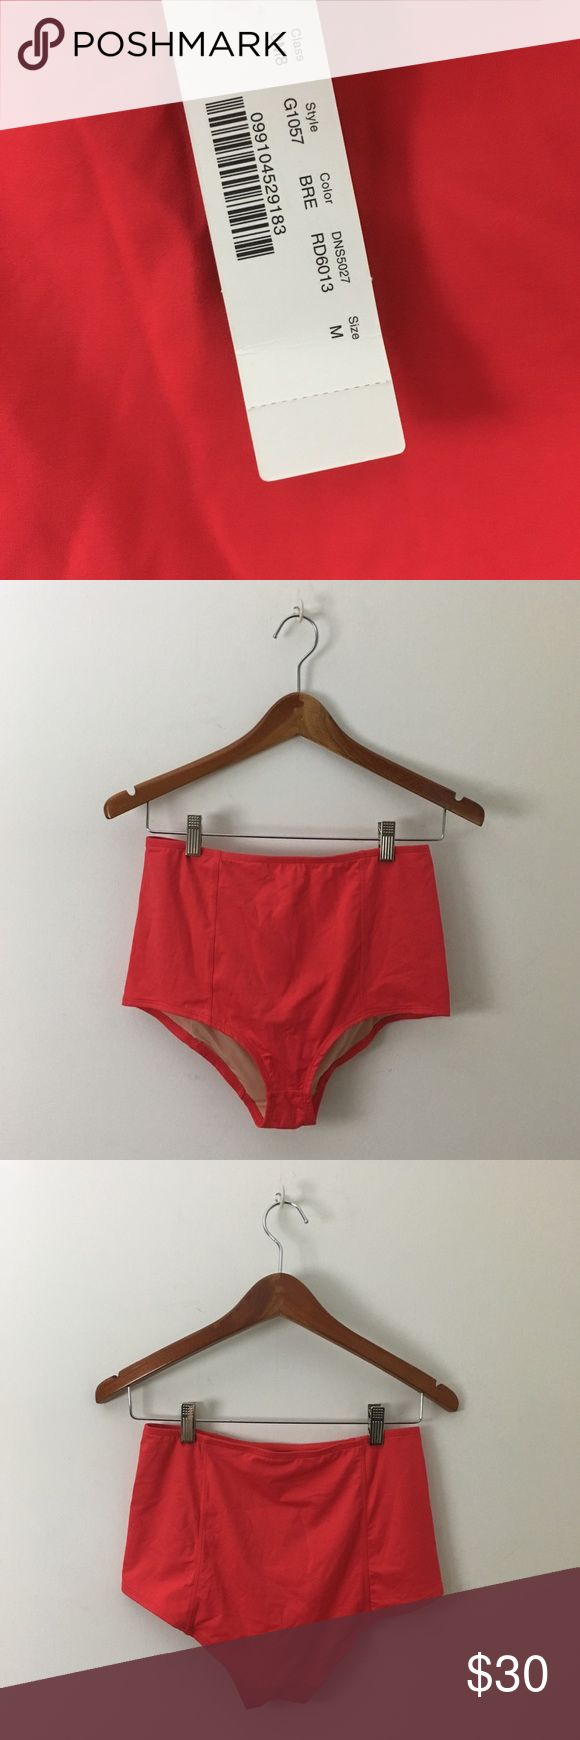 NWT J. Crew High Waist Bikini Bottoms Brand new with tags $54 J. Crew green high waisted bikini bottoms size Medium J. Crew Swim Bikinis